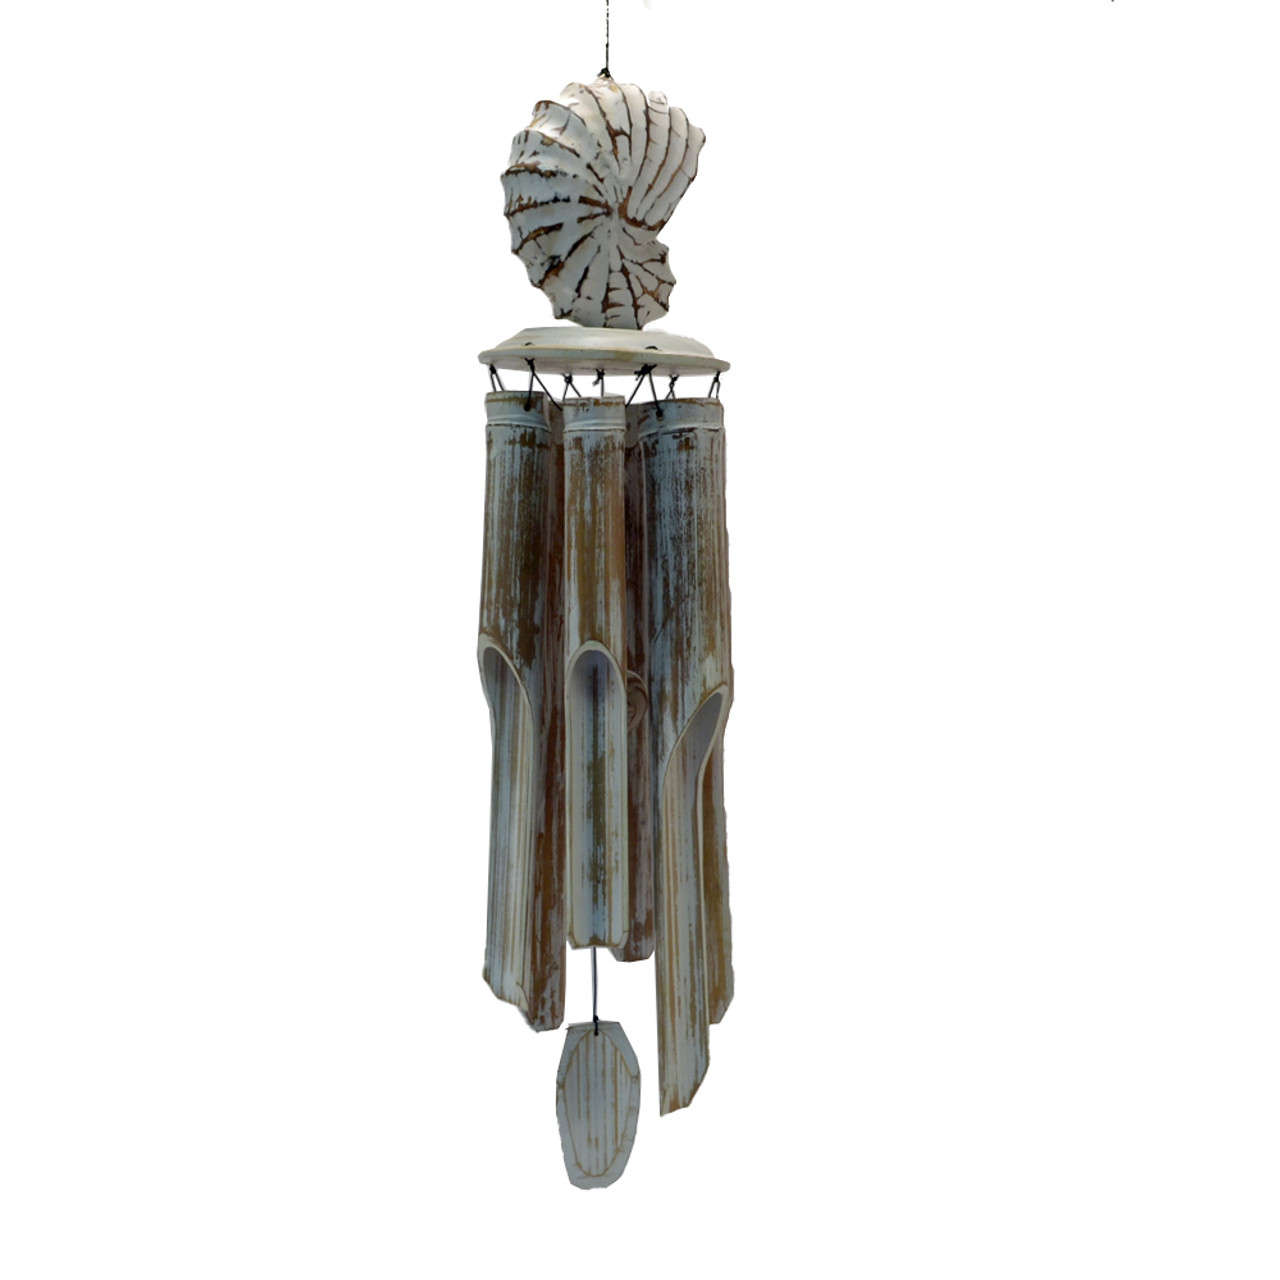 Beach House decor wind chime wood cone shell & bamboo Bamboo length 40cm  top of shell to bottom of chime 56cm